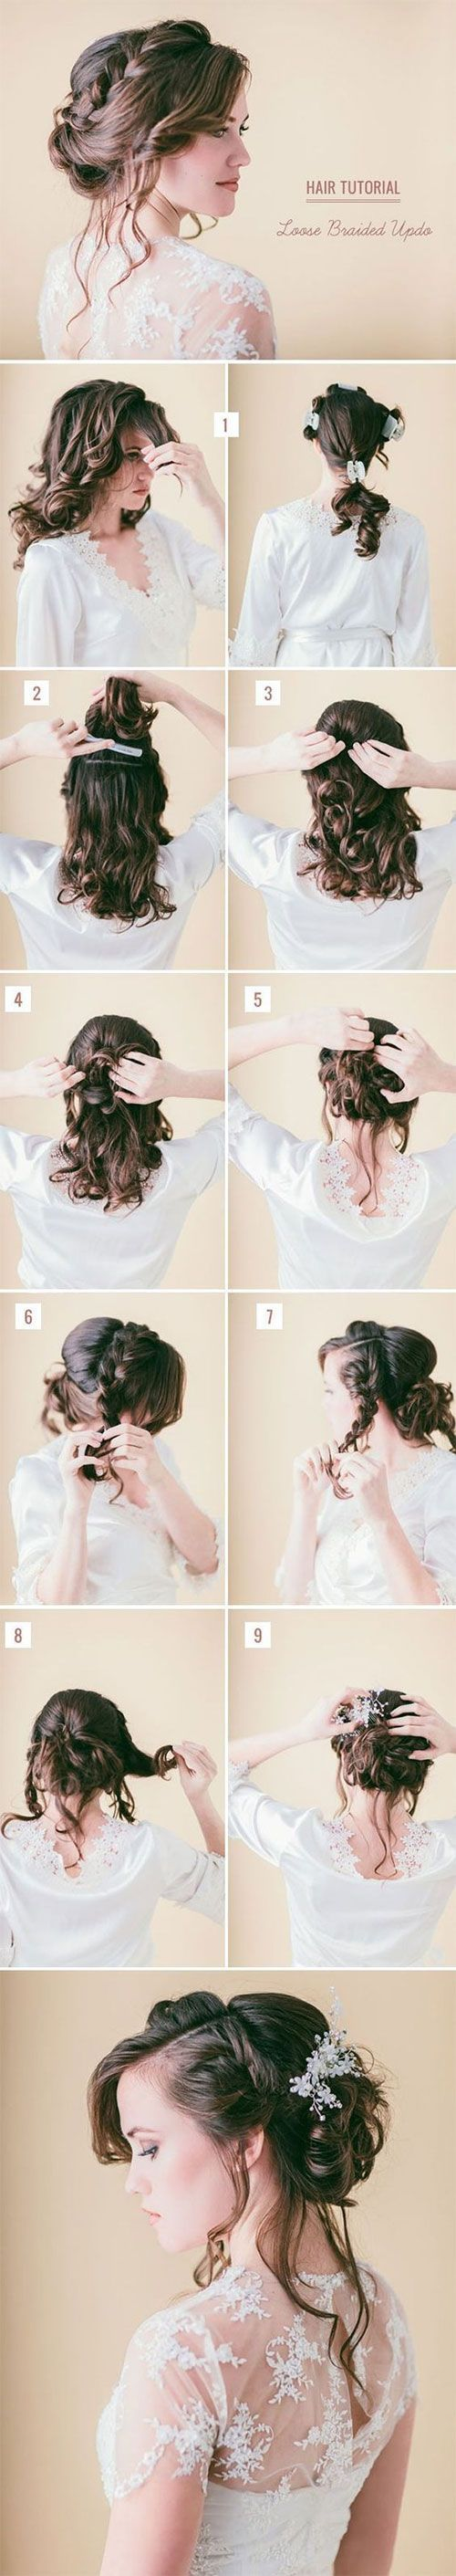 Hairstyle // Gorgeous braided updo tutorials that make for the perfect prom hairstyle.